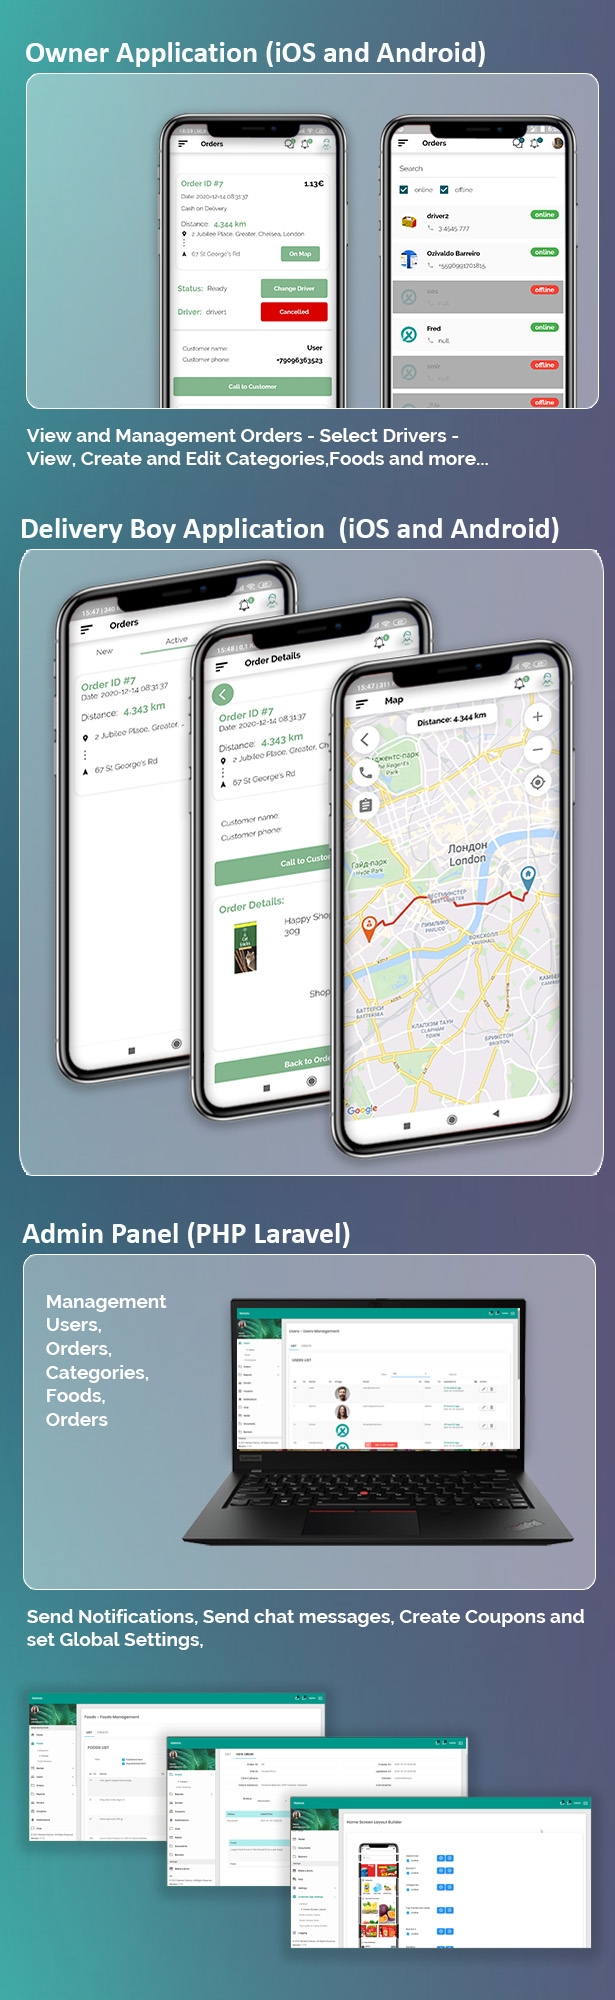 Single Market Grocery/Food/Pharmacy (Android+iOS+Admin Panel) Full App Solution with Web Site - 3